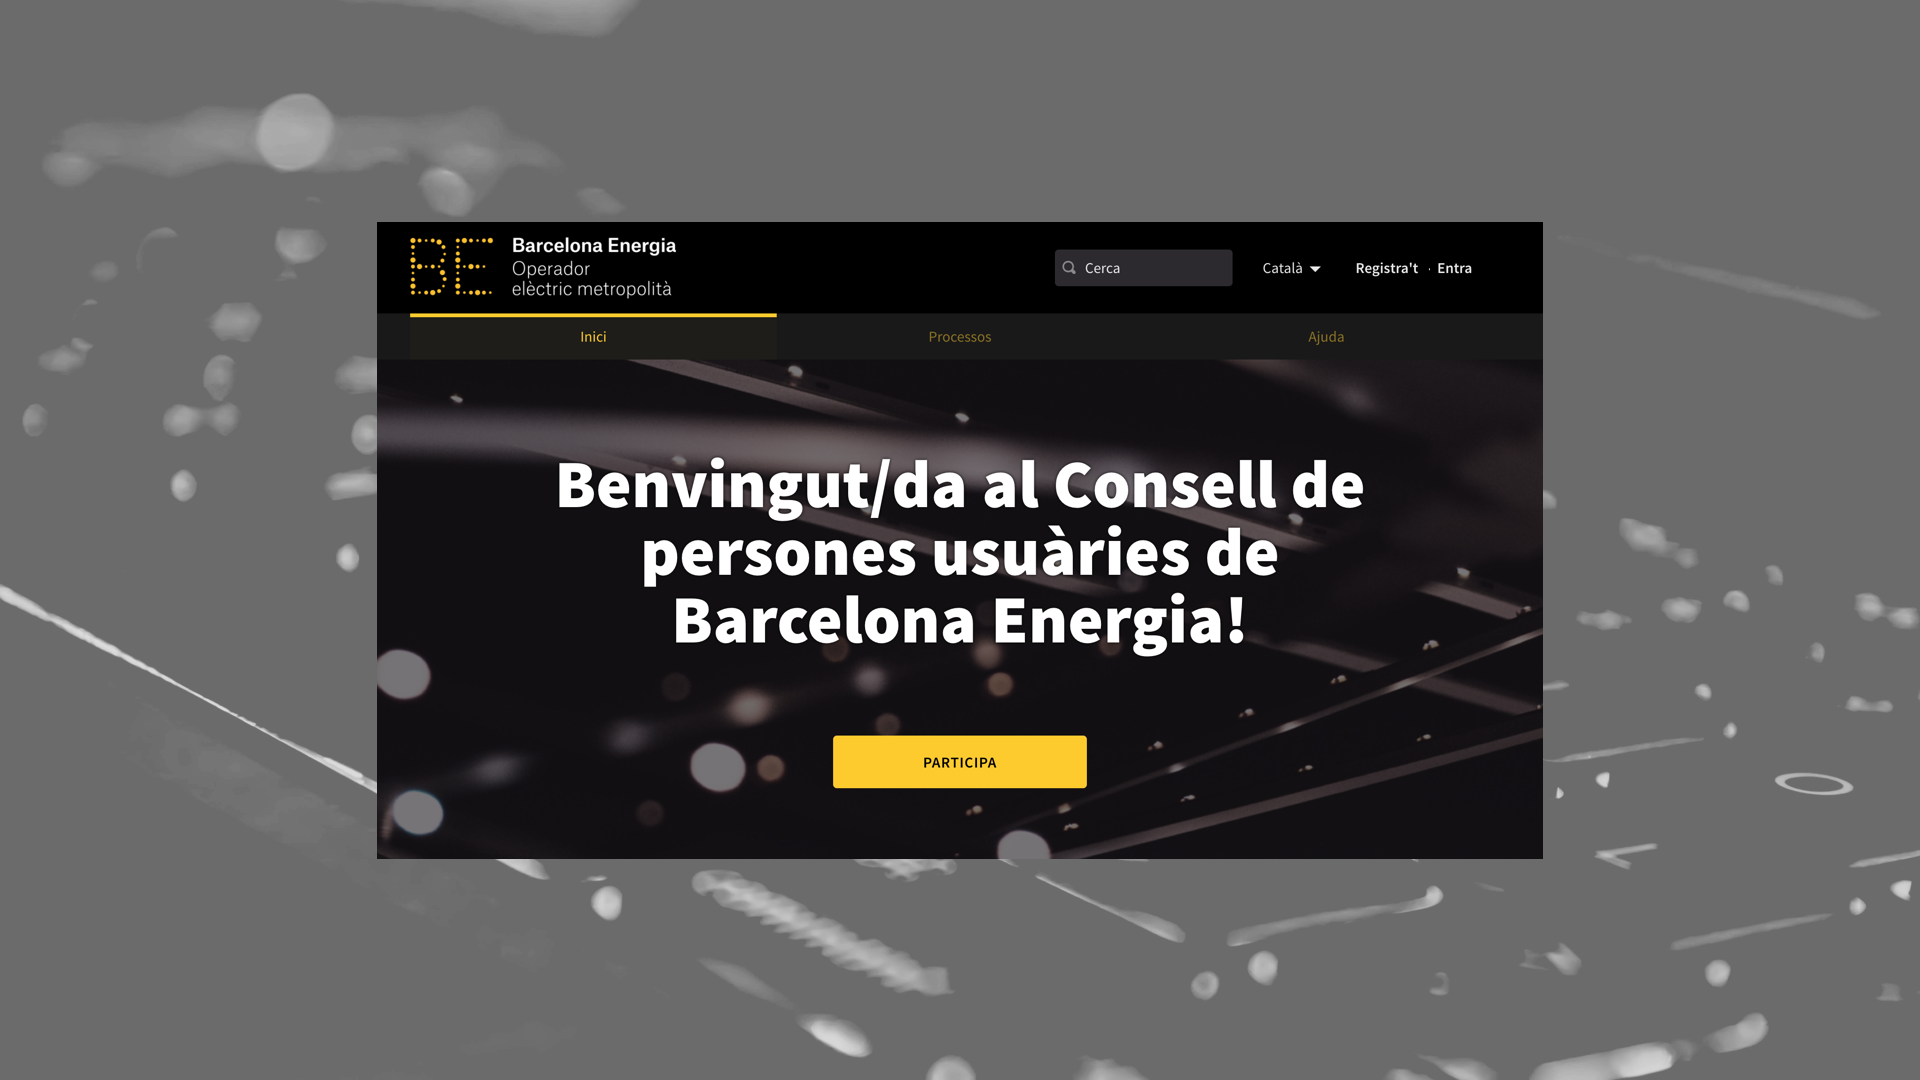 Barcelona Energia users assembly home image